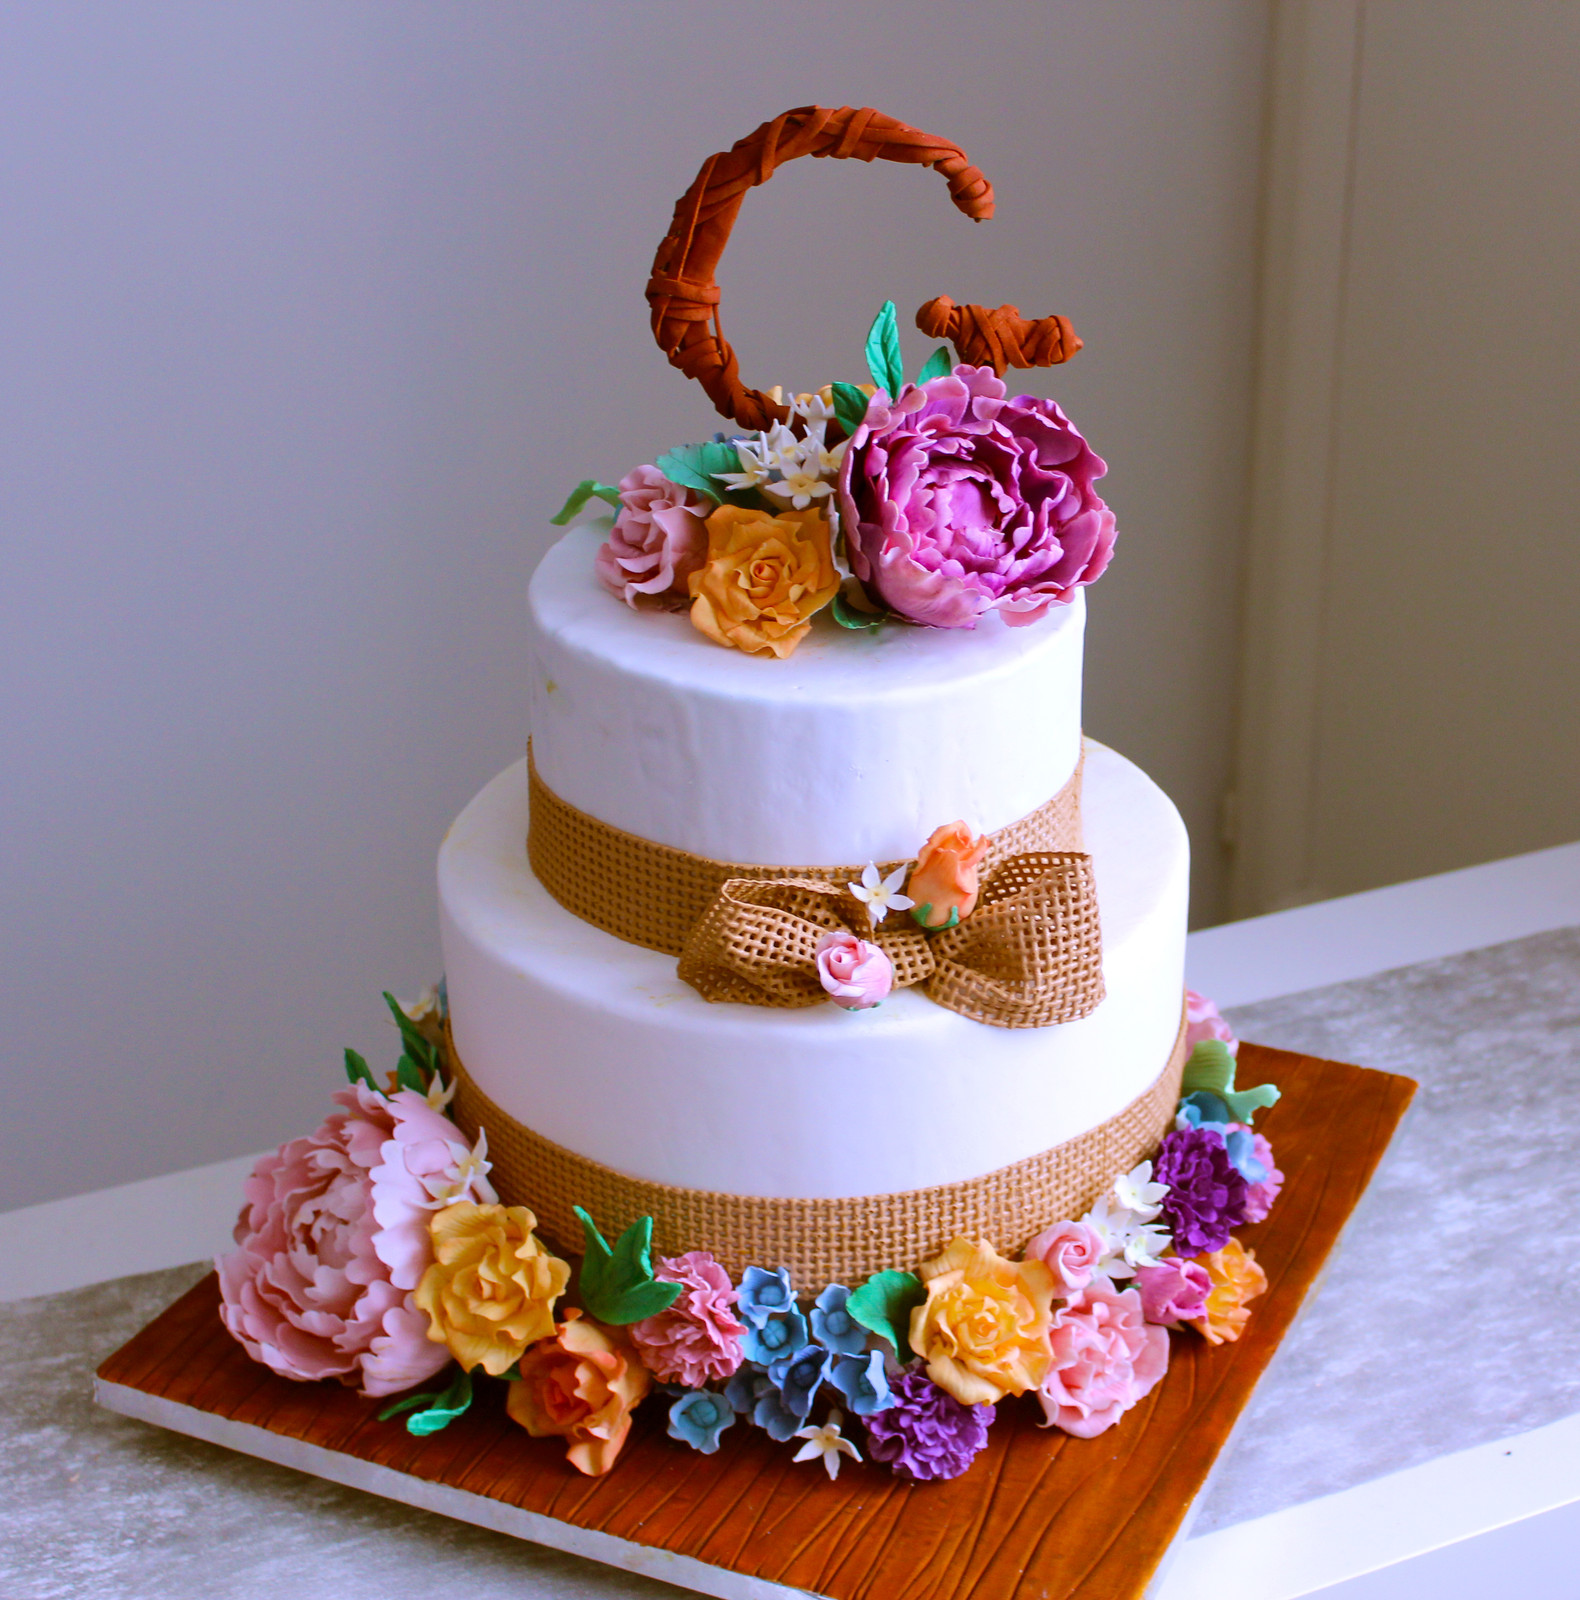 Lovely Desserts Gateaux Pate A Sucre Oise Mariage Wedding Cake